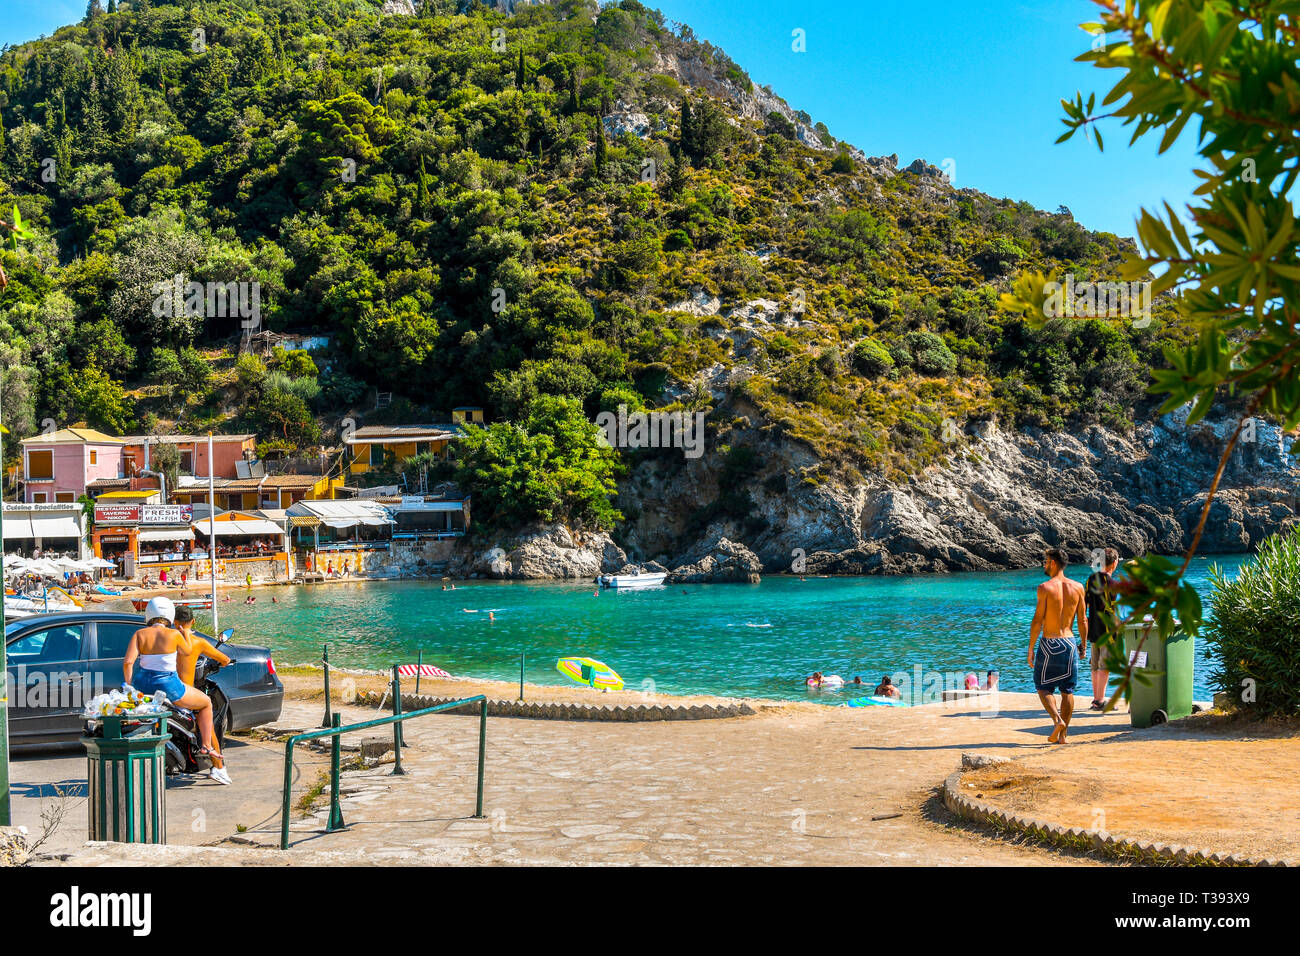 A young couple on a motorcycle arrive at a small bay near Palaiokastritsa Beach on the Greek island of Corfu. Stock Photo